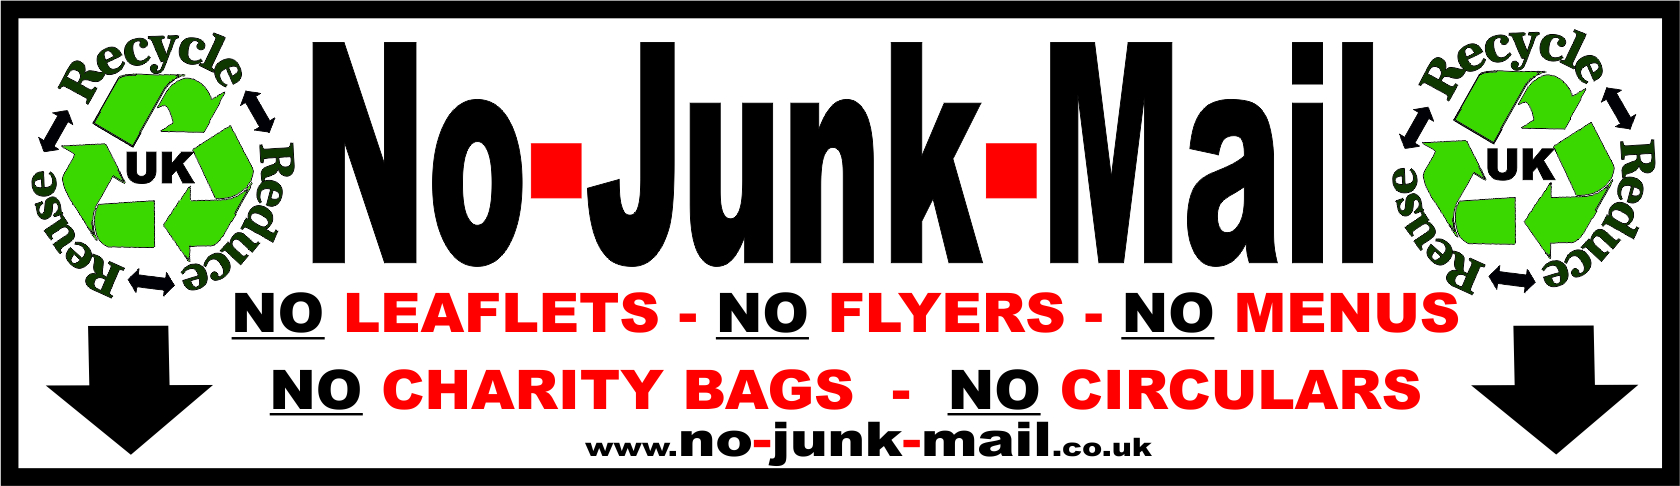 No Junk Mail Sign, No Junk Mail Sticker, Junk Mail Sign, Junk Mail Sticker, Stops Junk Mail, No Junk Mail Letterbox Sticker by www.no-junk-mail.co.uk